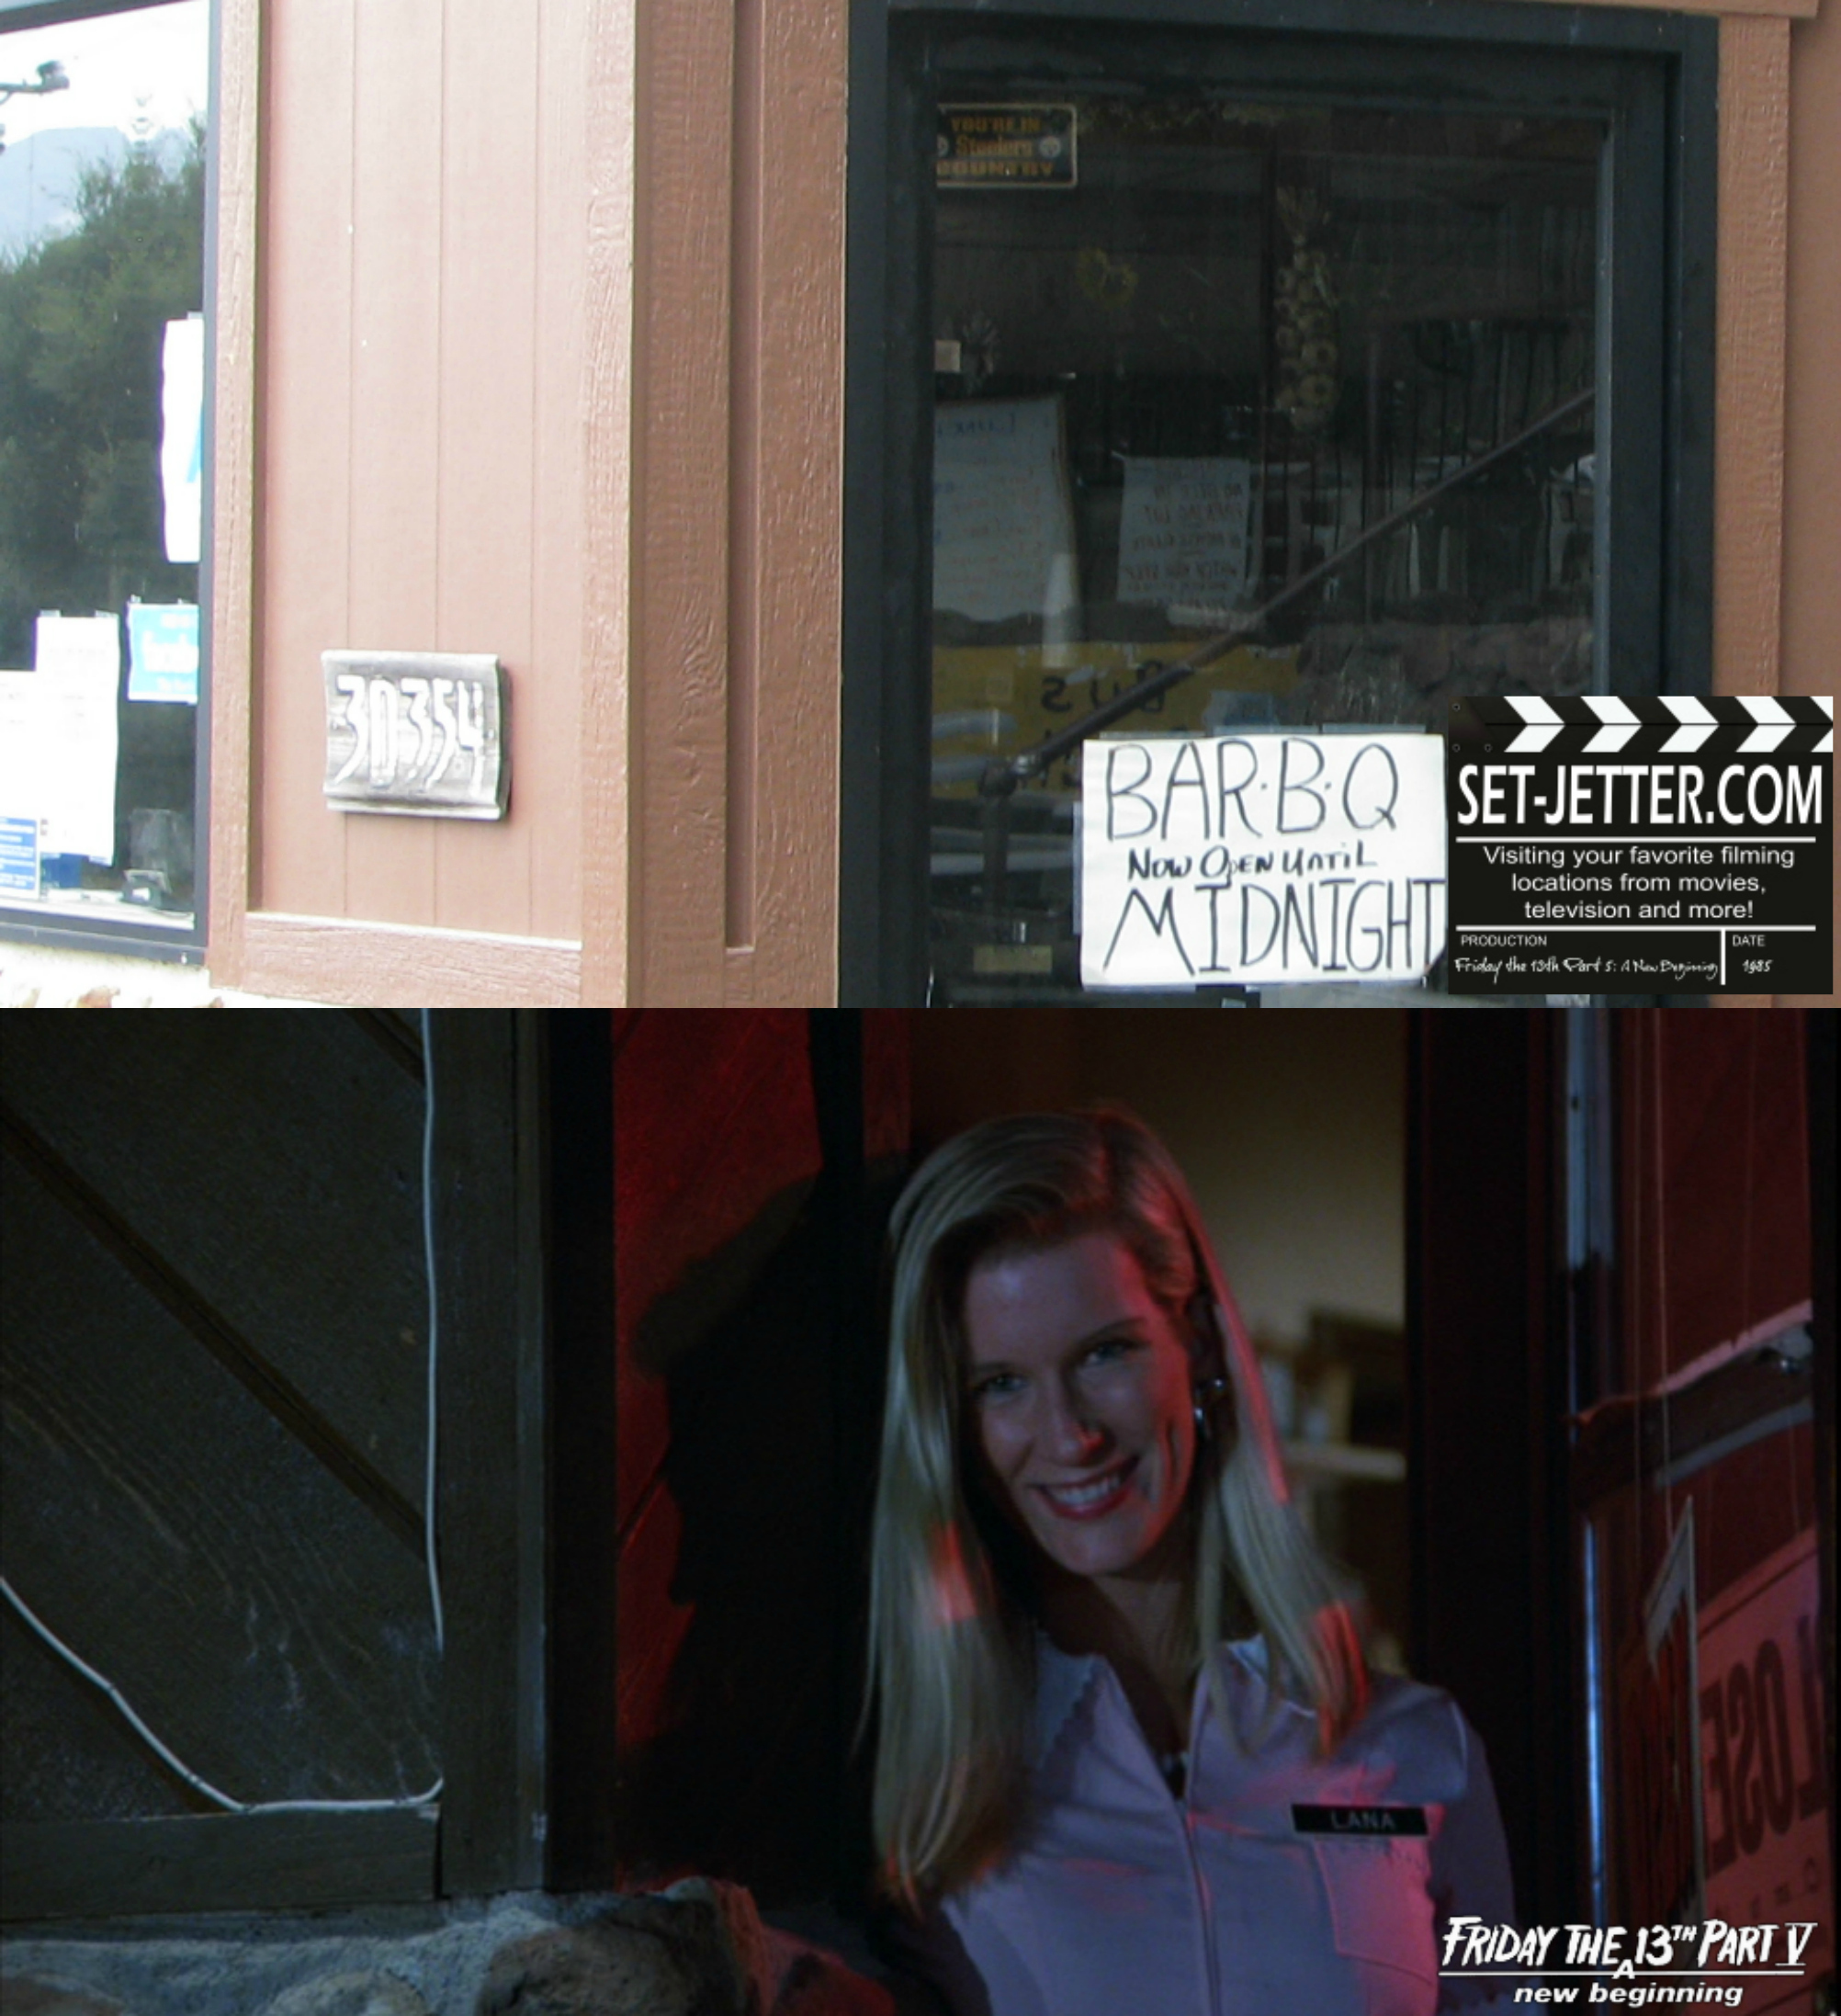 Friday the 13th Part V comparison 06.jpg